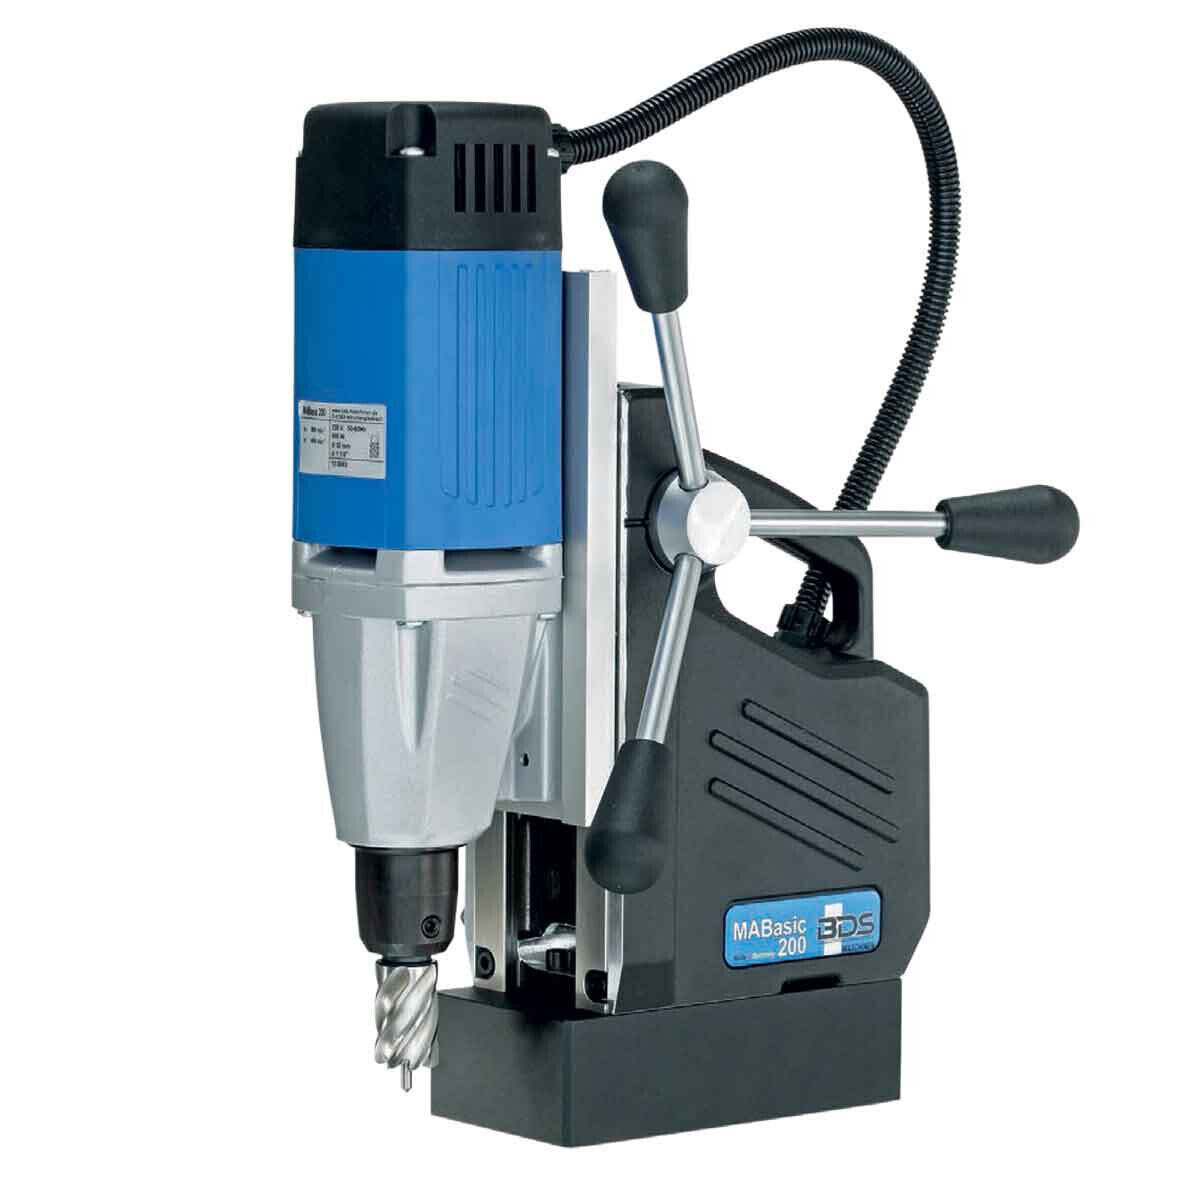 MABasic 200 Magnetic Metal Drill